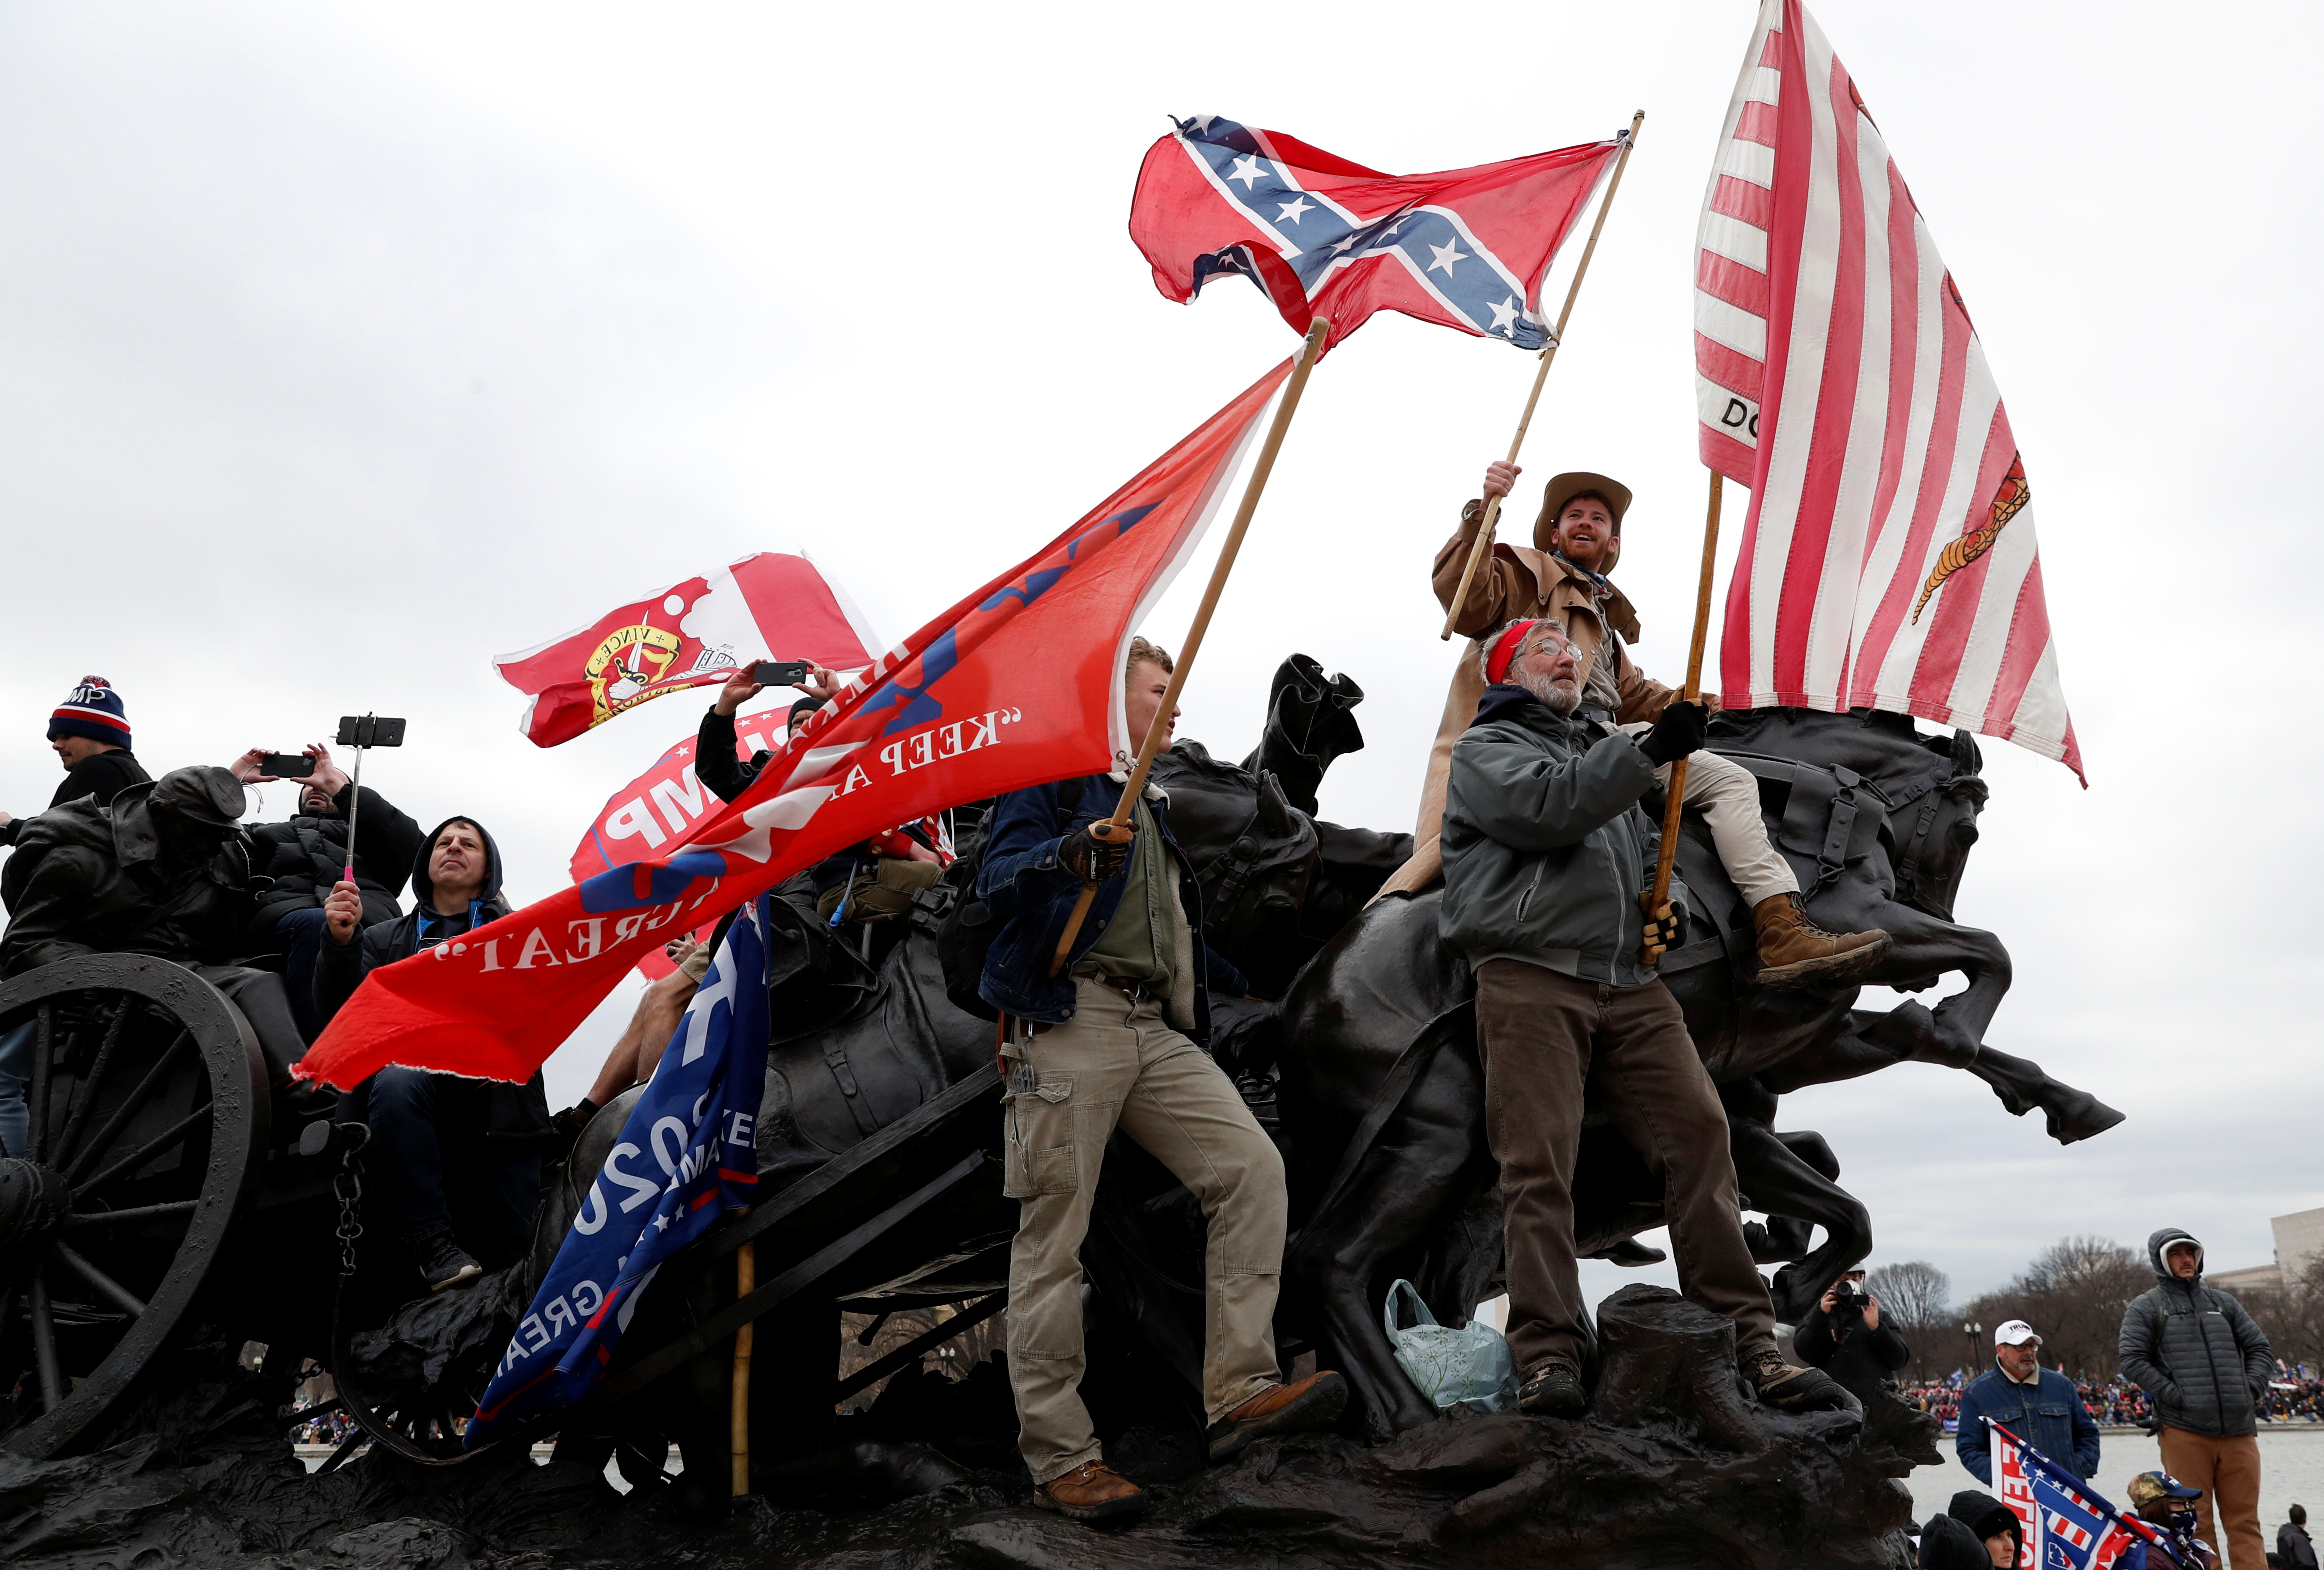 Pro-Trump protesters wave banners during clashes with Capitol police at a rally to contest the certification of the 2020 U.S. presidential election results by the U.S. Congress, at the U.S. Capitol Building in Washington, U.S, January 6, 2021. REUTERS/Shannon Stapleton